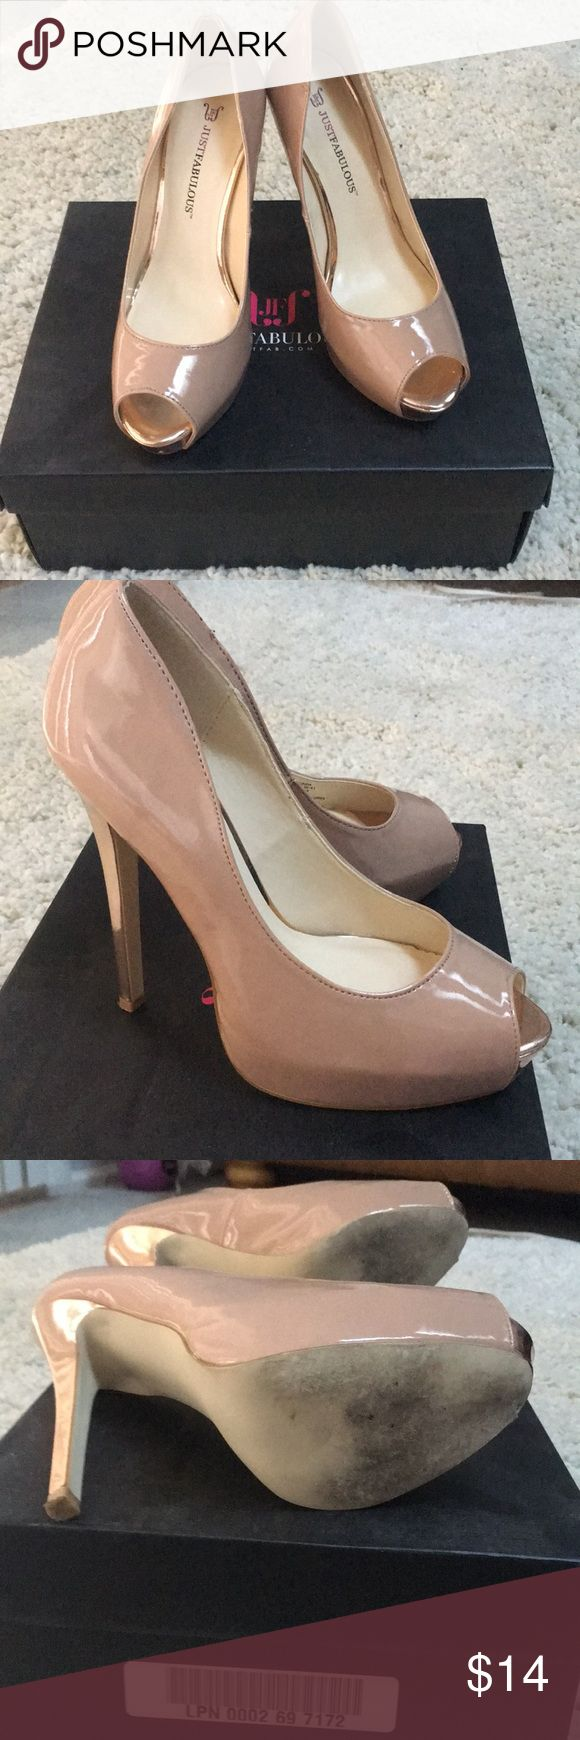 💋 Nude x Rose Gold Peep Toe Heel Pumps 💋 Very sexy shoe. Can be dressed up or work casually with a pair of jeans. Perfect fir for any closet!! JustFab Shoes Heels